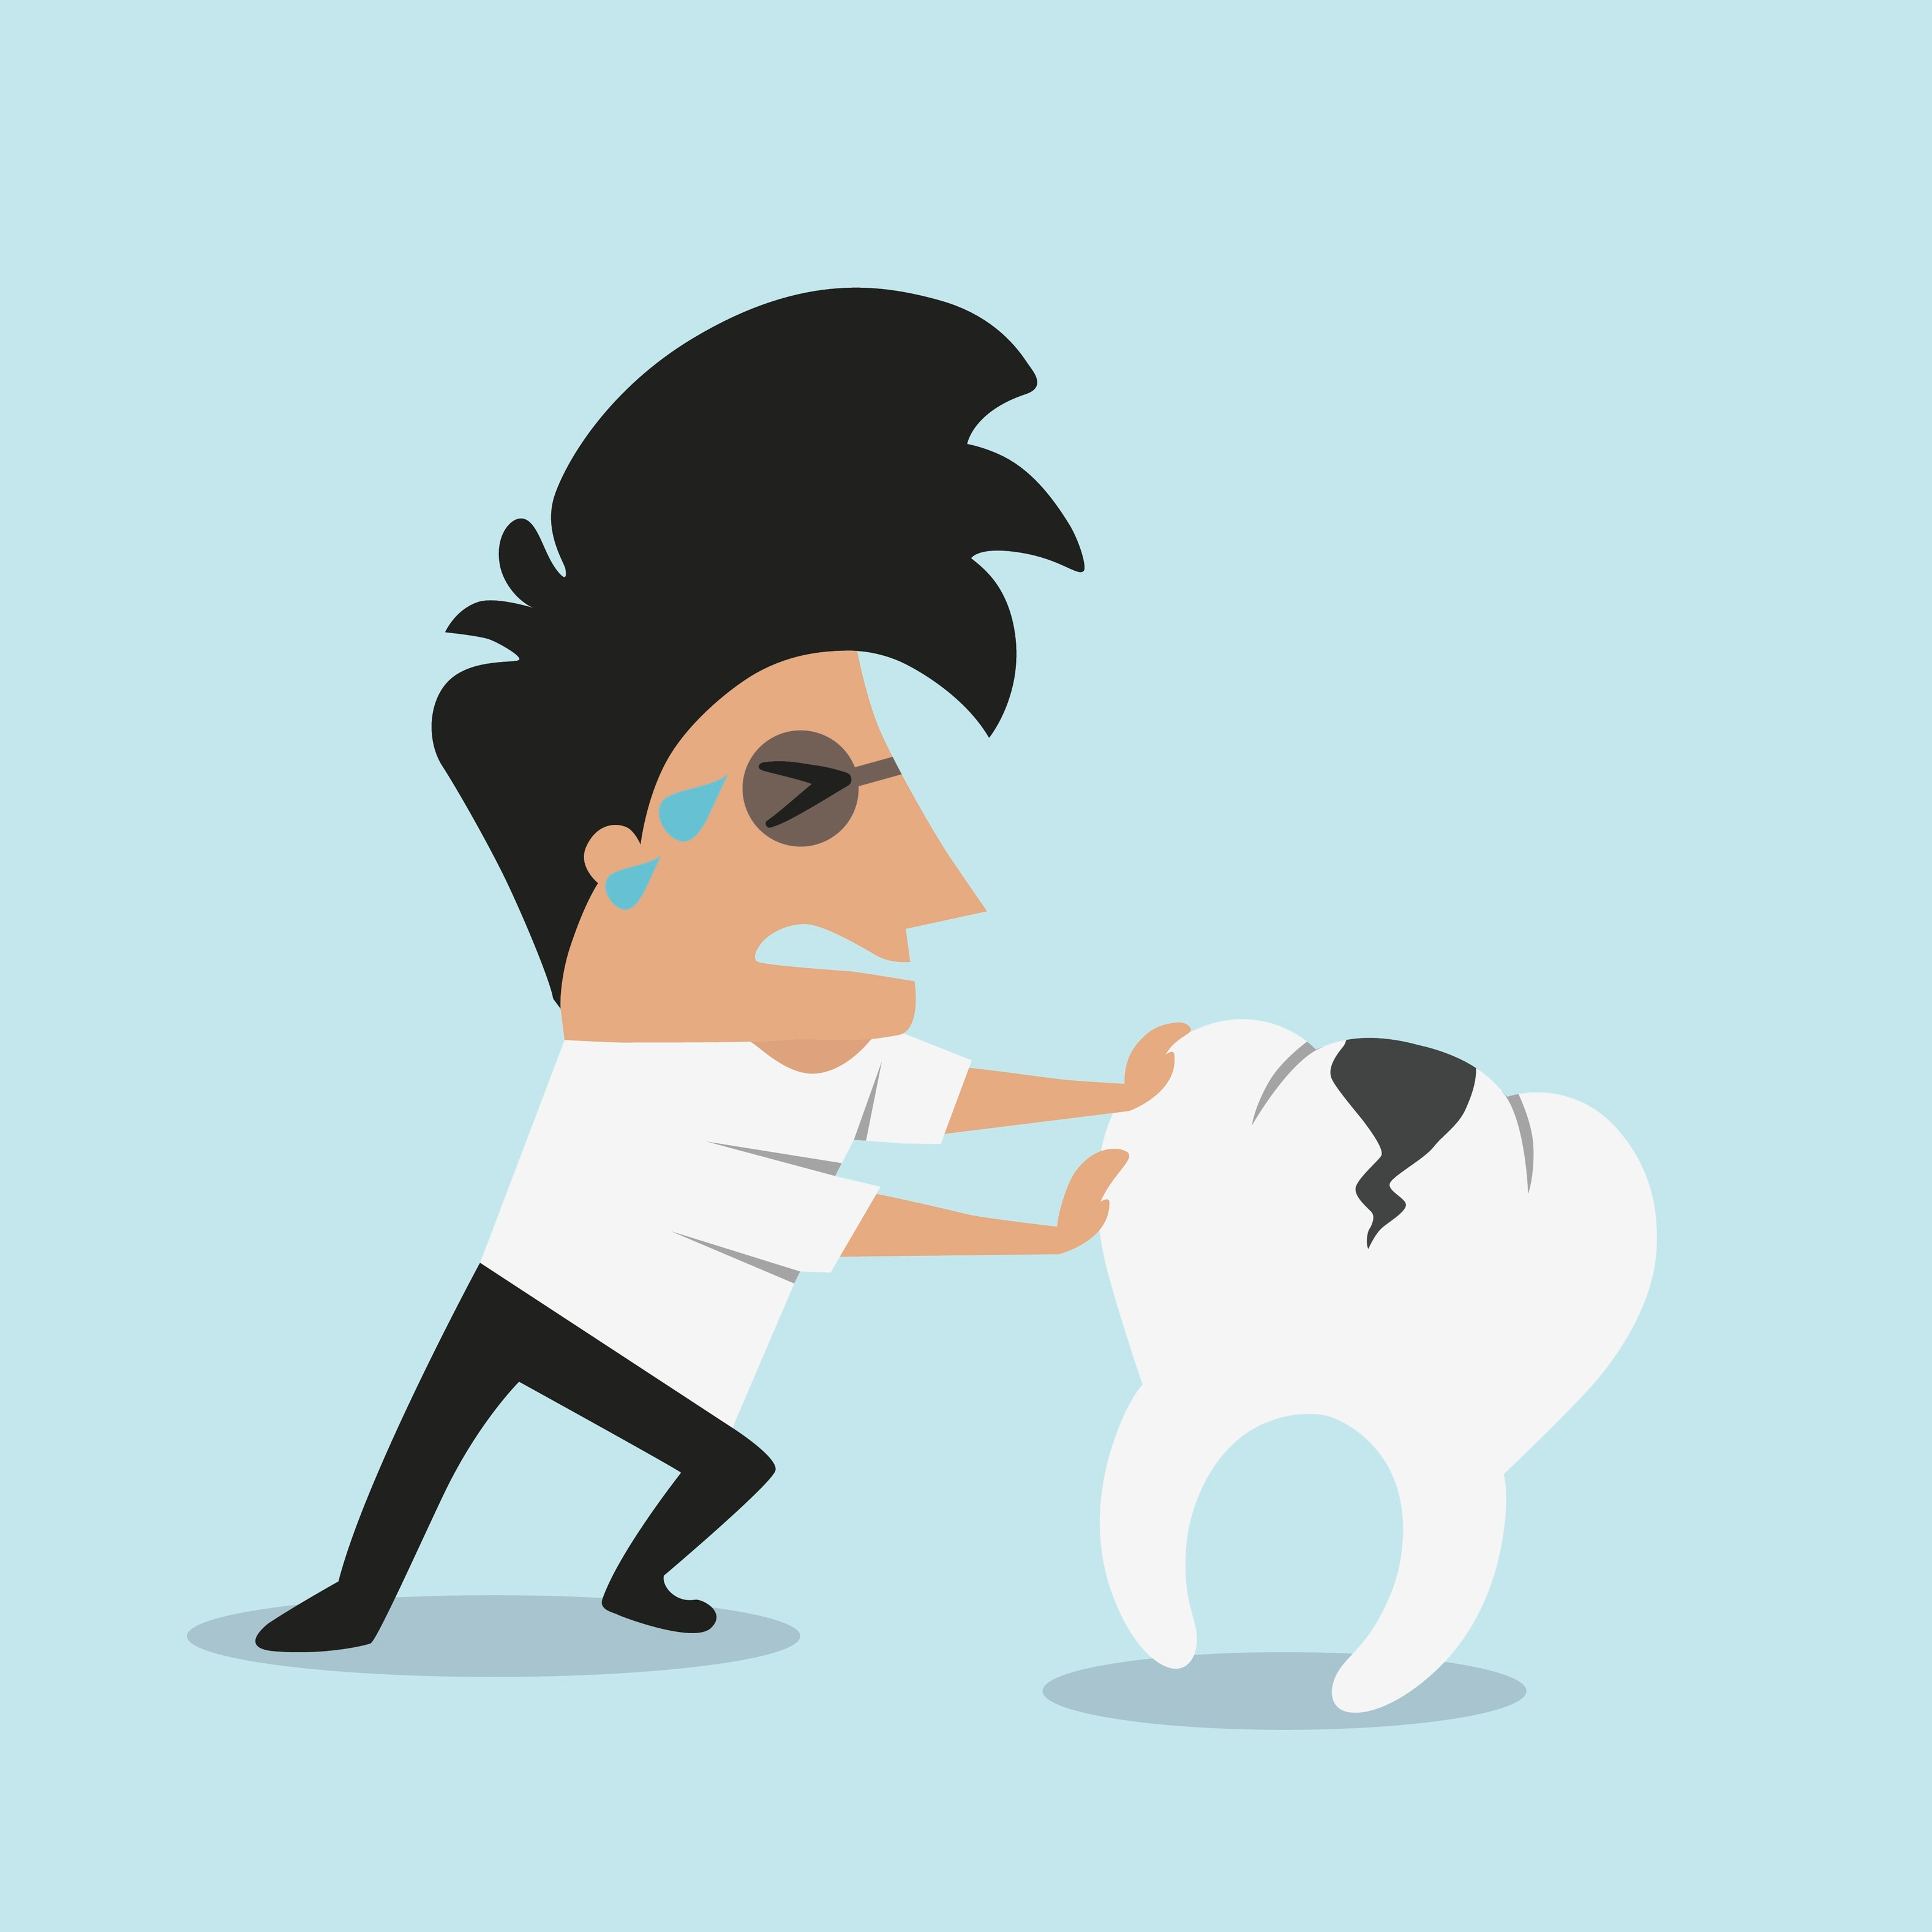 cartoon image of a guy pushing a tooth